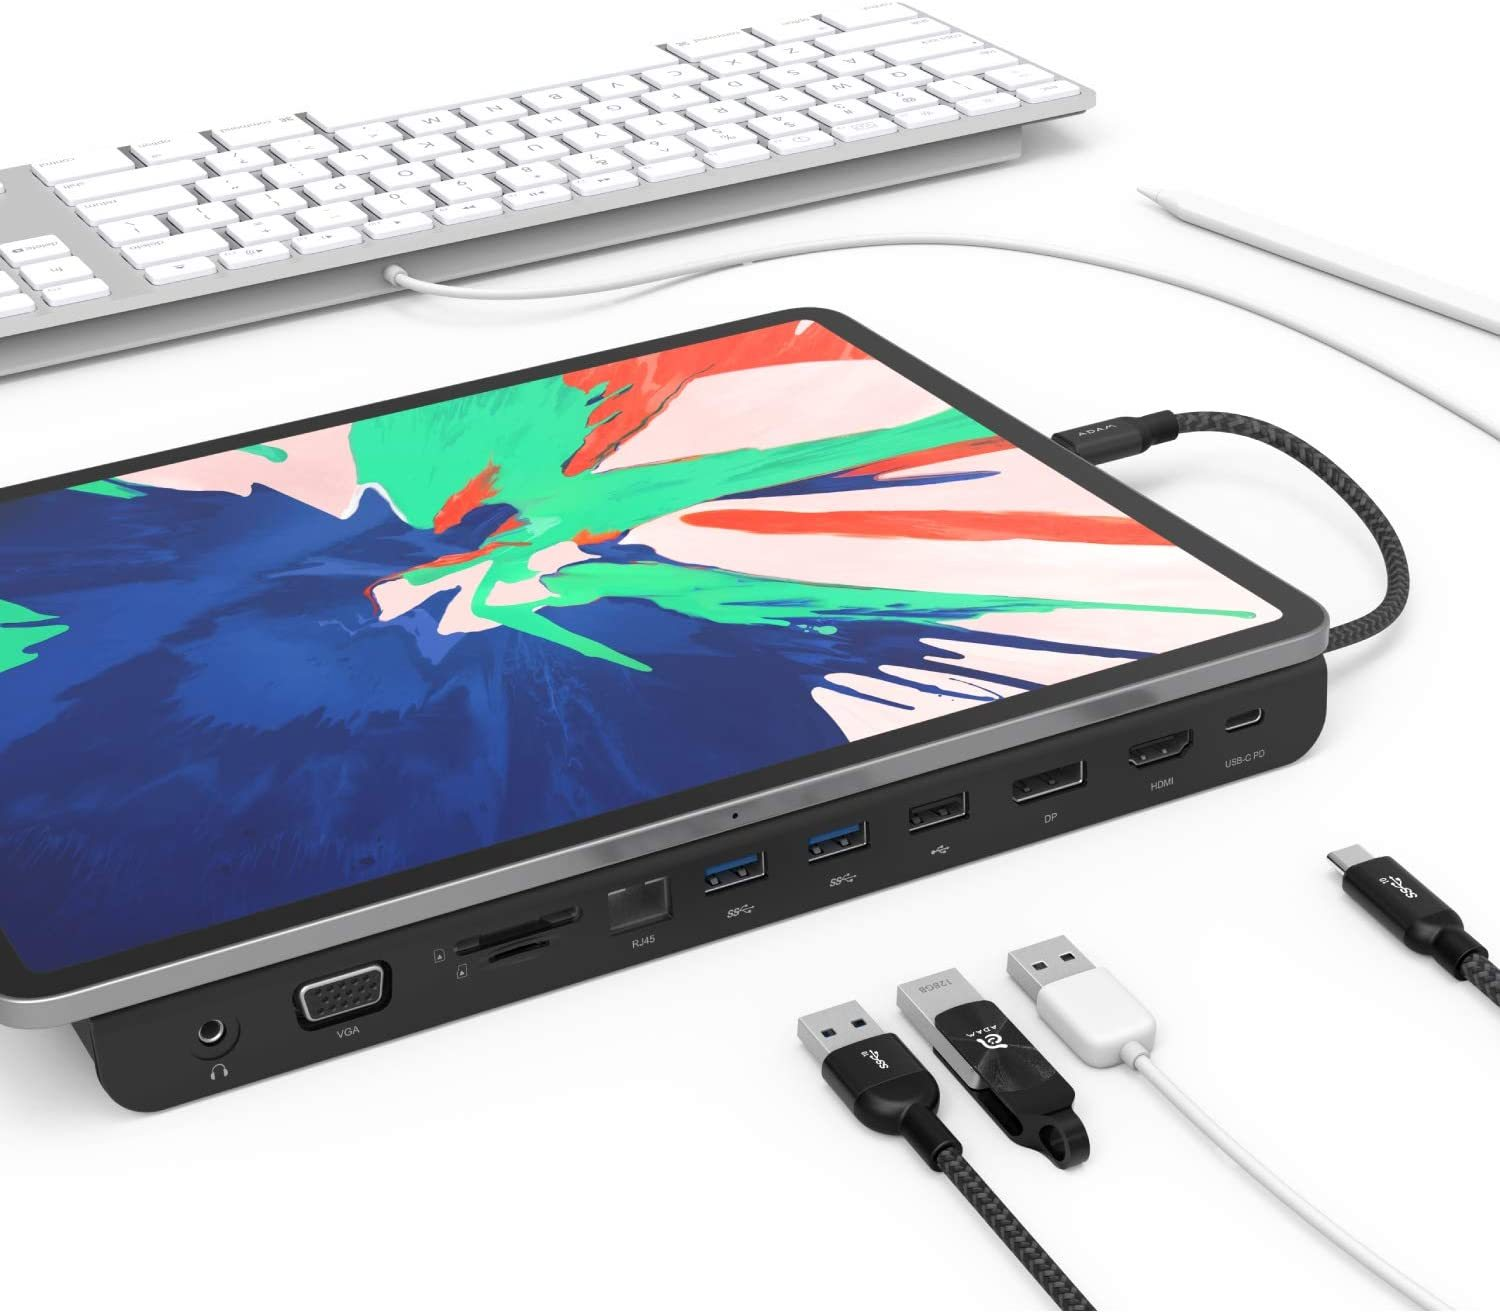 elements Hub Pro USB-C Docking Station - HDMI, VGA, DisplayPort - Ethernet - 3X USB Ports - USB-C with PD - SD and microSD Card Readers - 3.5 mm Audio Out - Built-in Phone Stand